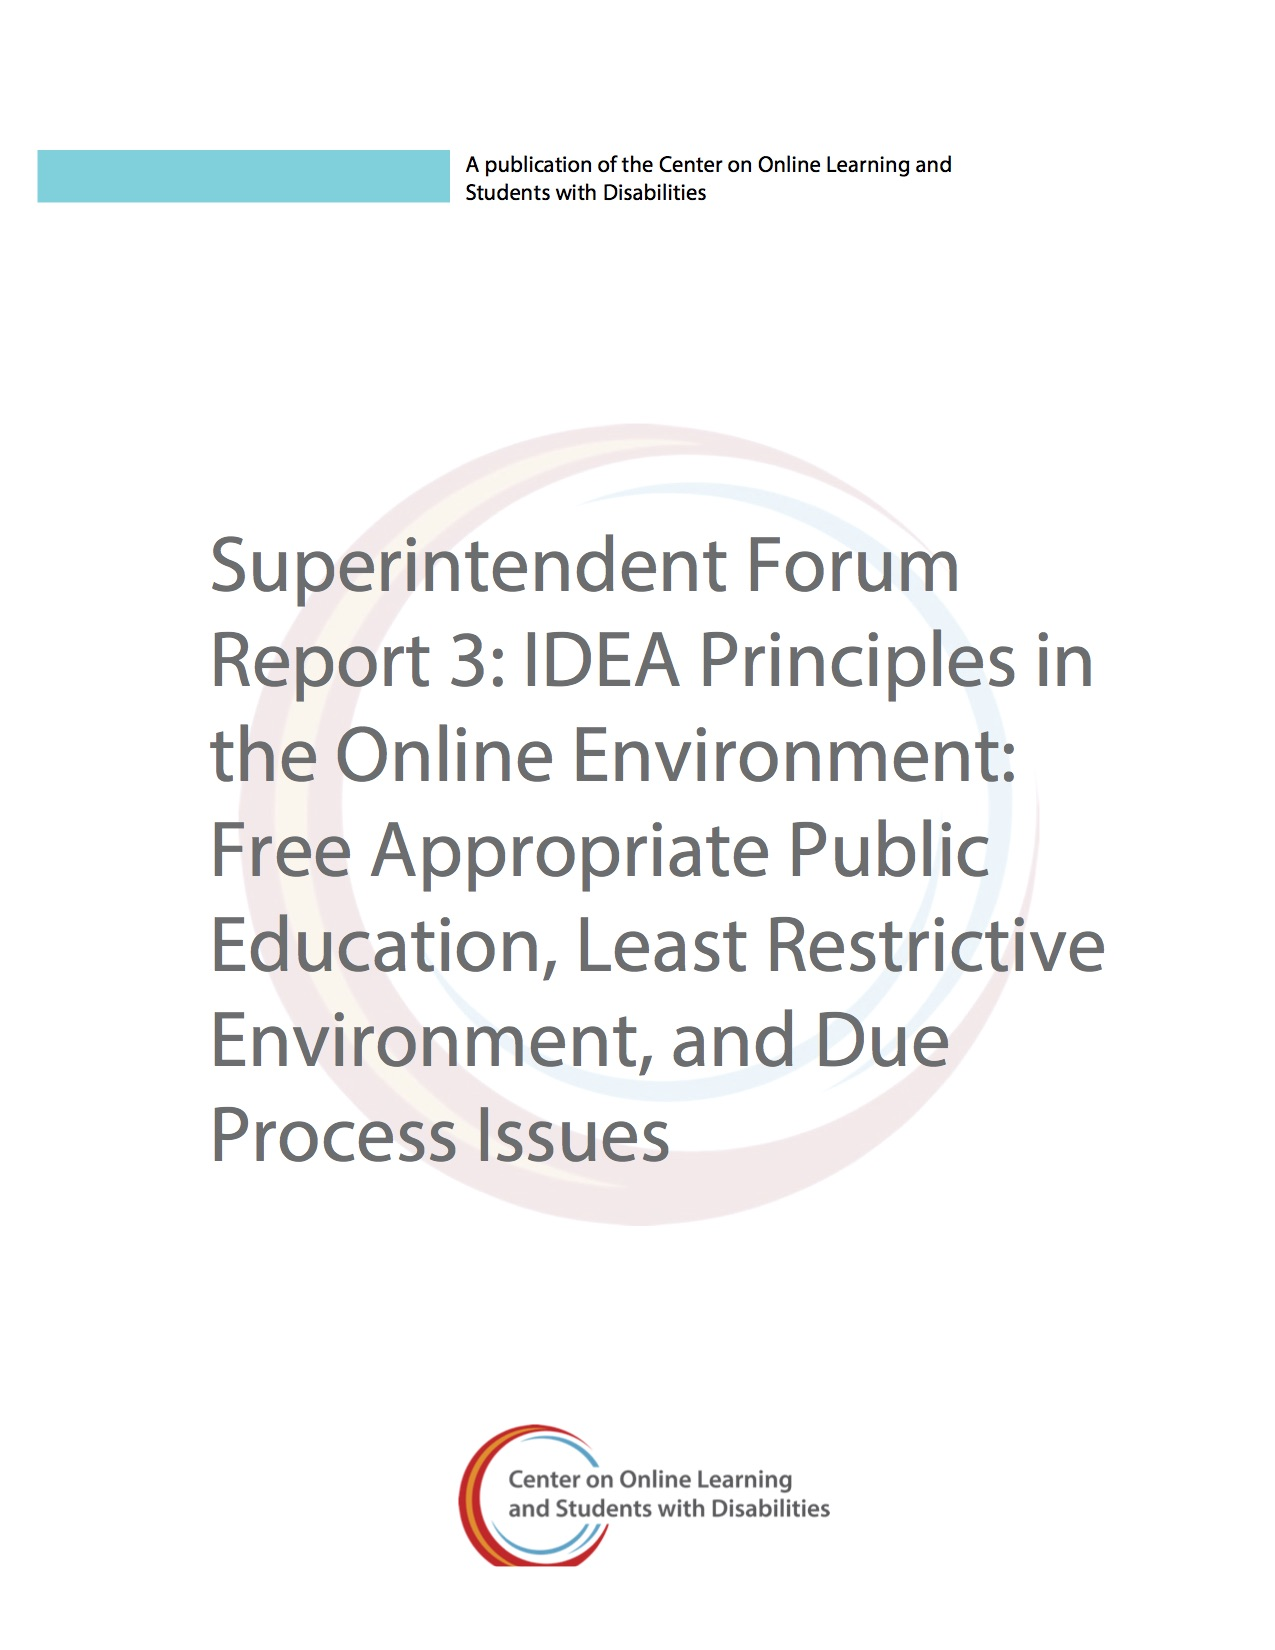 Superintendent Forum Report 3: IDEA Principles In The Online Environment: Free Appropriate Public Education, Least Restrictive Environment, And Due Process Issues